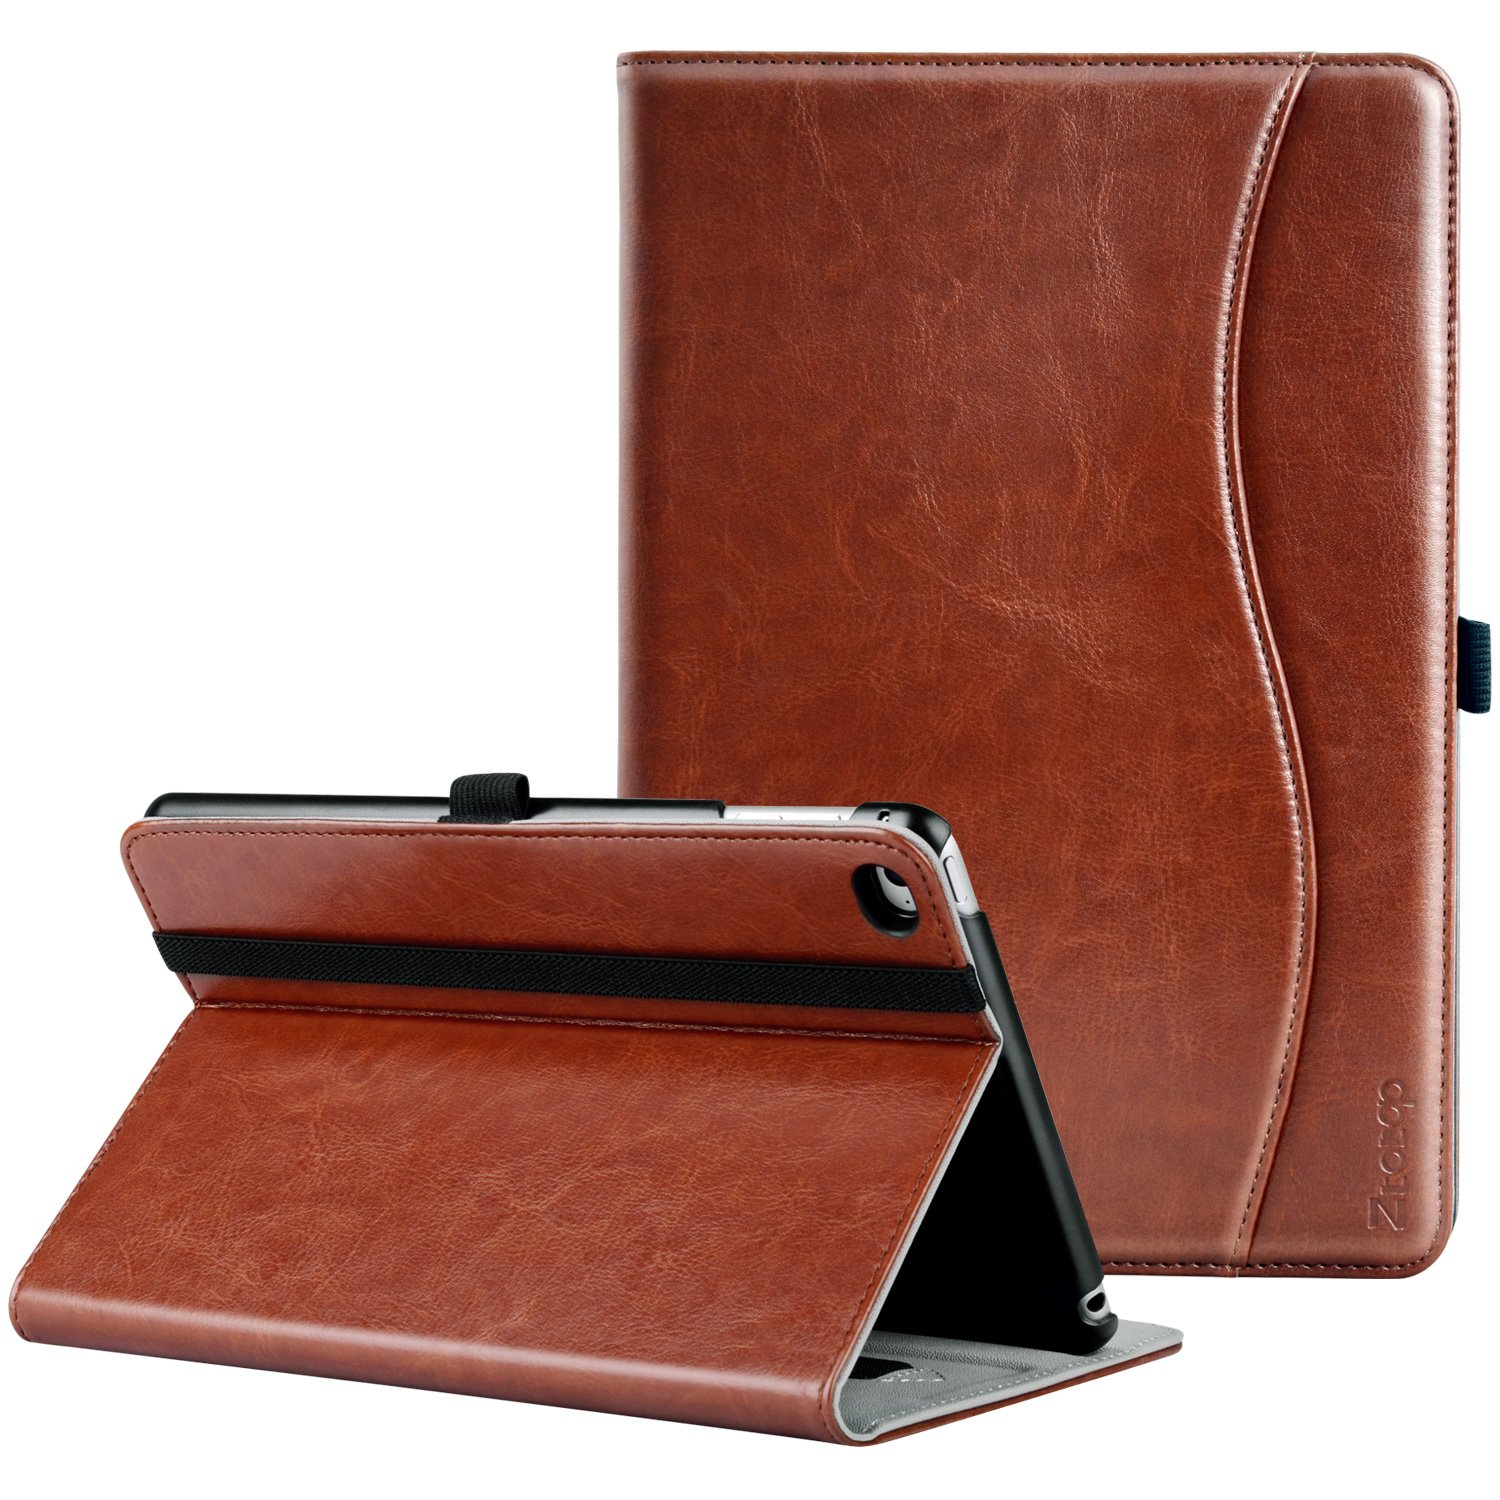 Ztotop iPad Mini 4 Case, Premium Leather Folio Stand Protective Case Smart Cover with Multi-Angle Viewing, Paperwork Card Pocket, Functional Elastic Strap for iPad Mini 4 - Brown